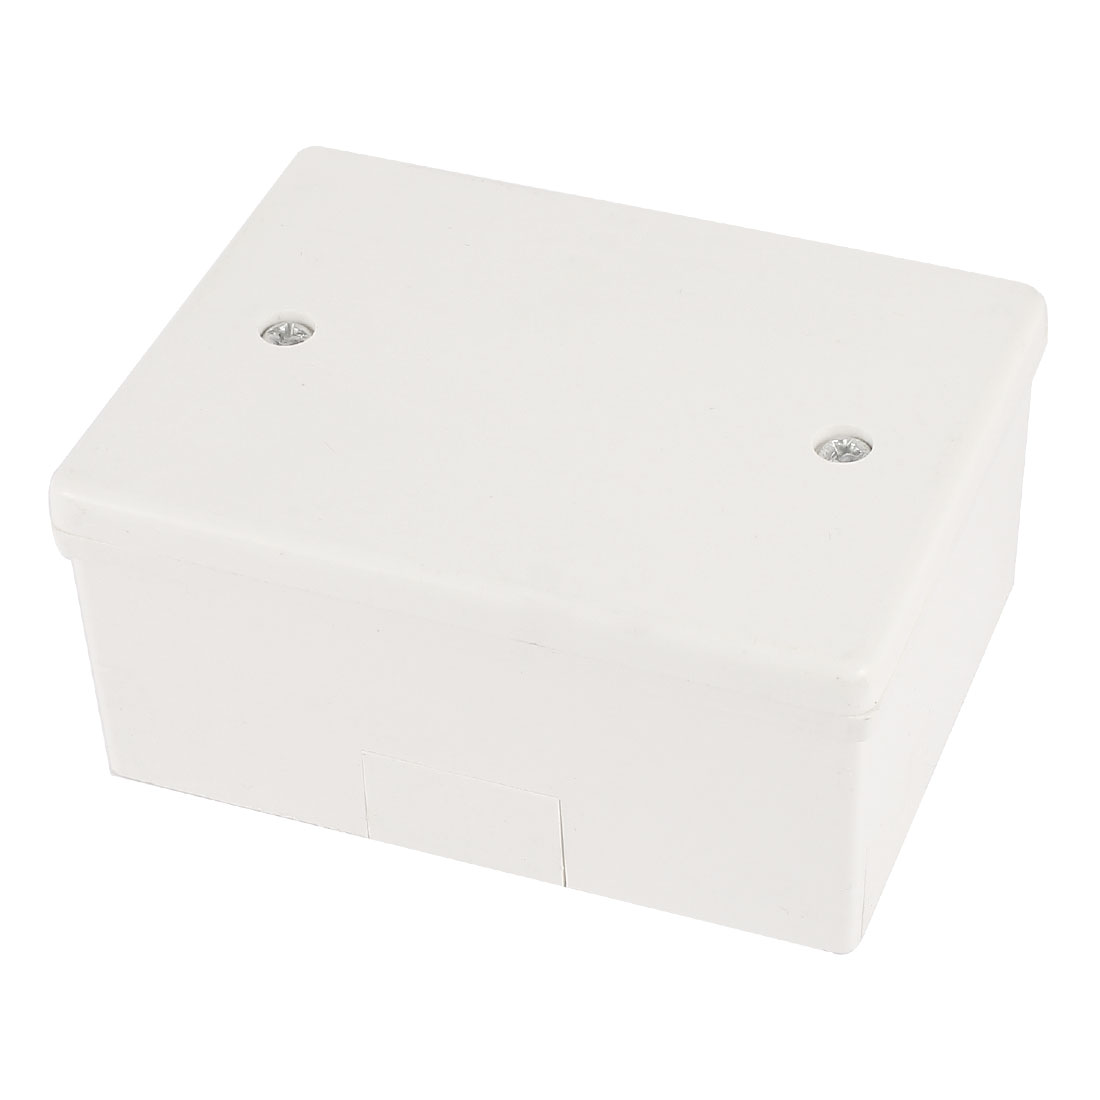 100mm x 75mm x 46mm Surface Mounted Waterproof Rectangle White PVC Enclosure Case DIY Junction Box